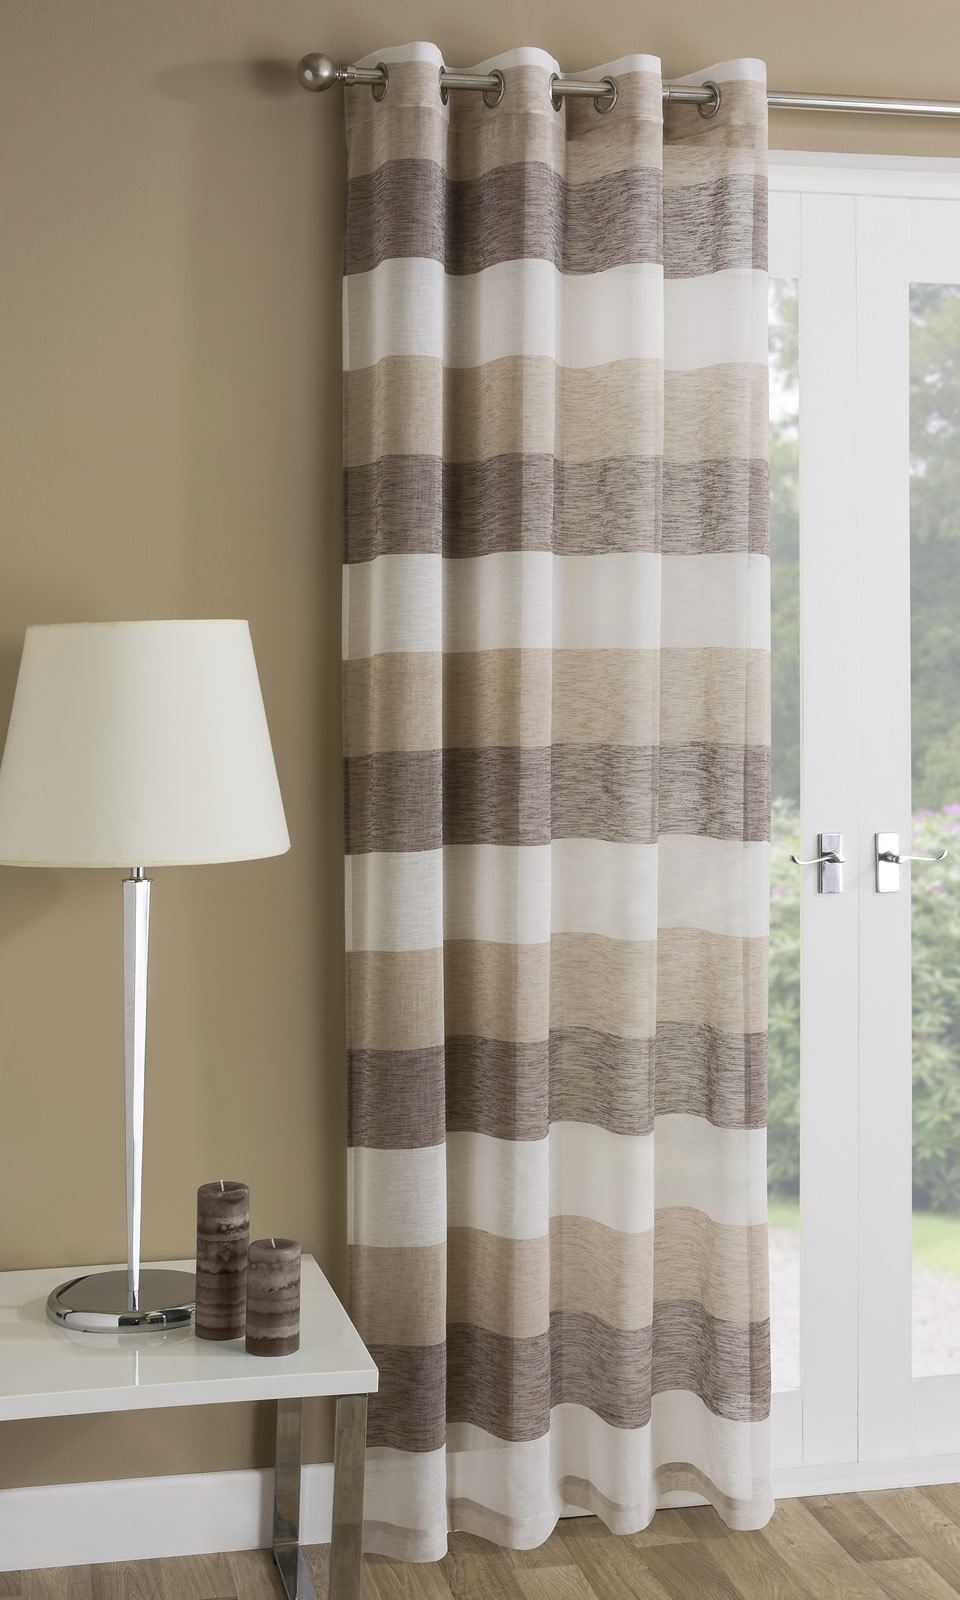 Mykonos Striped Eyelet Sheer Voile Ring Top Window Door Curtain With Regard To Striped Door Curtain (Image 12 of 15)